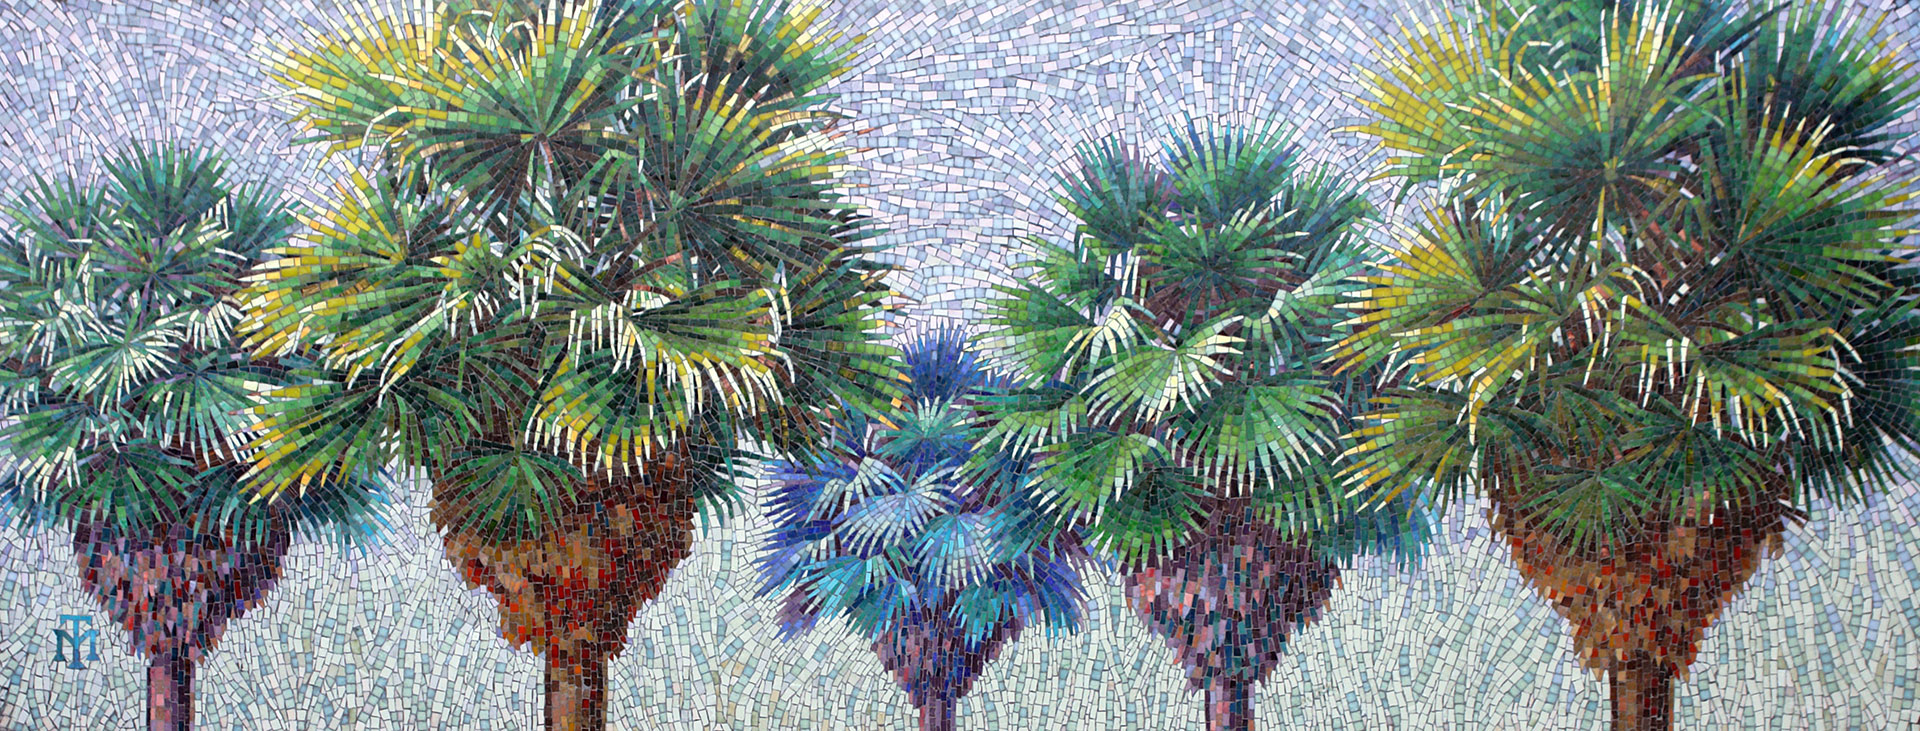 Newport Elementary Mural - Palm Trees